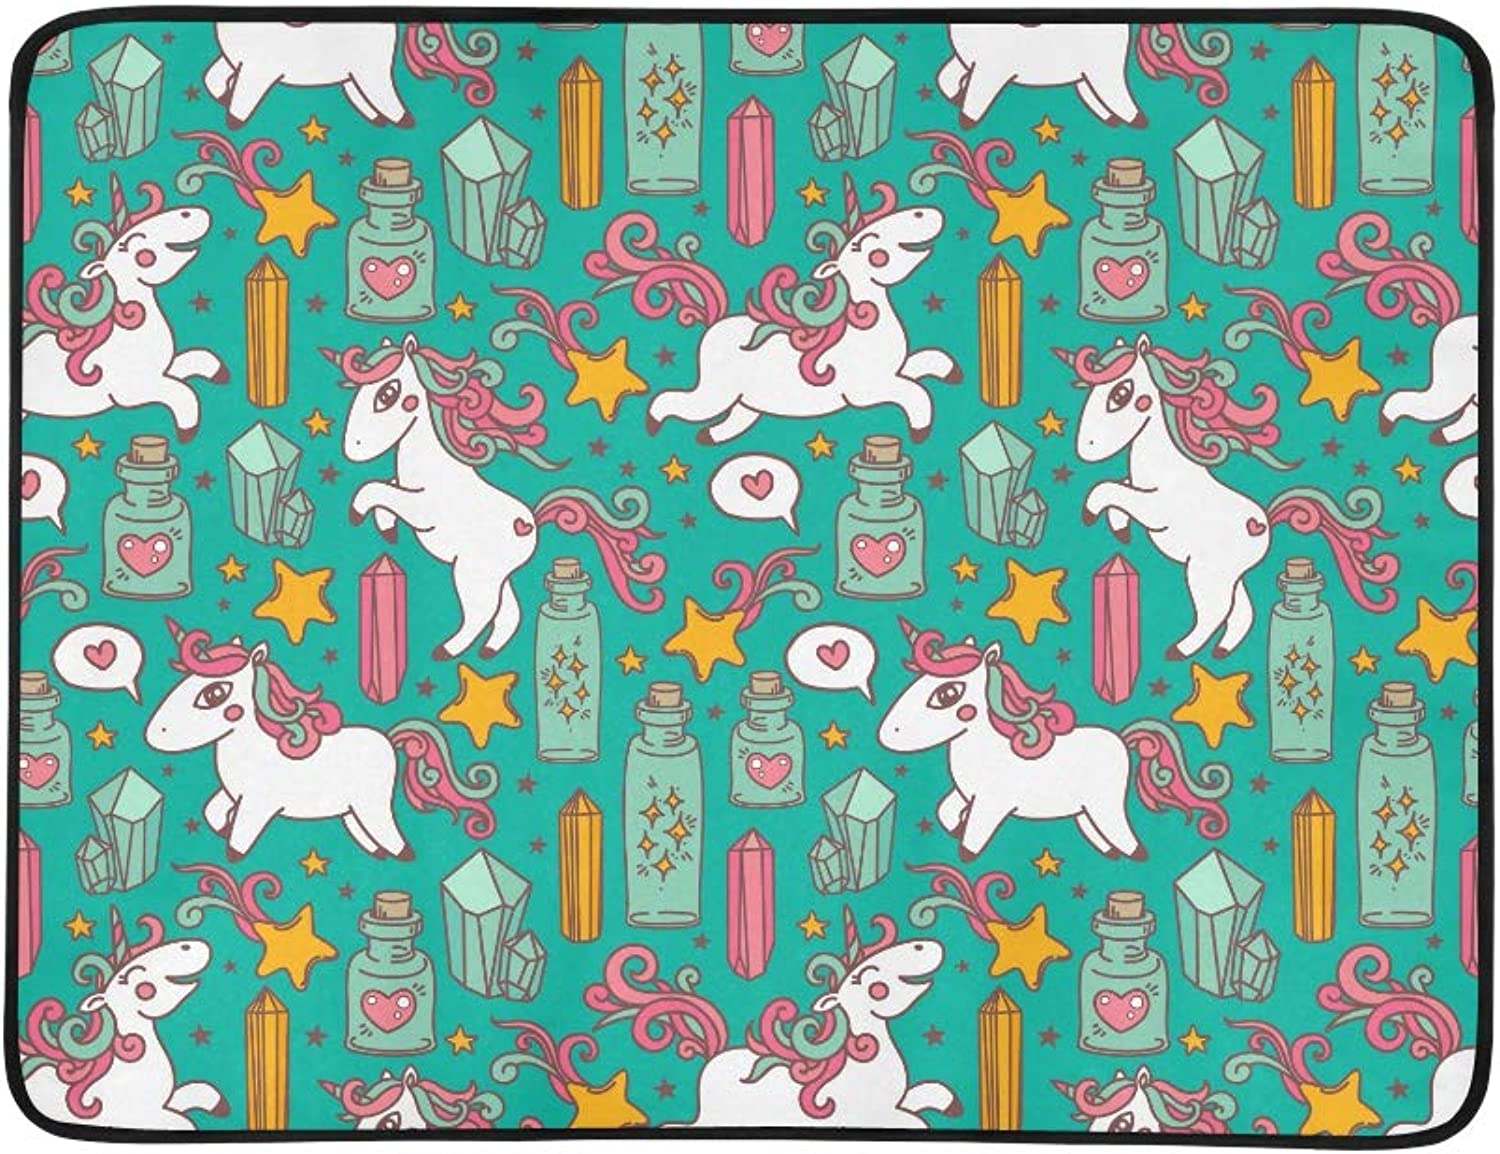 Cute Unicorns Magic Crystals and Flasks Pattern Pattern Portable and Foldable Blanket Mat 60x78 Inch Handy Mat for Camping Picnic Beach Indoor Outdoor Travel